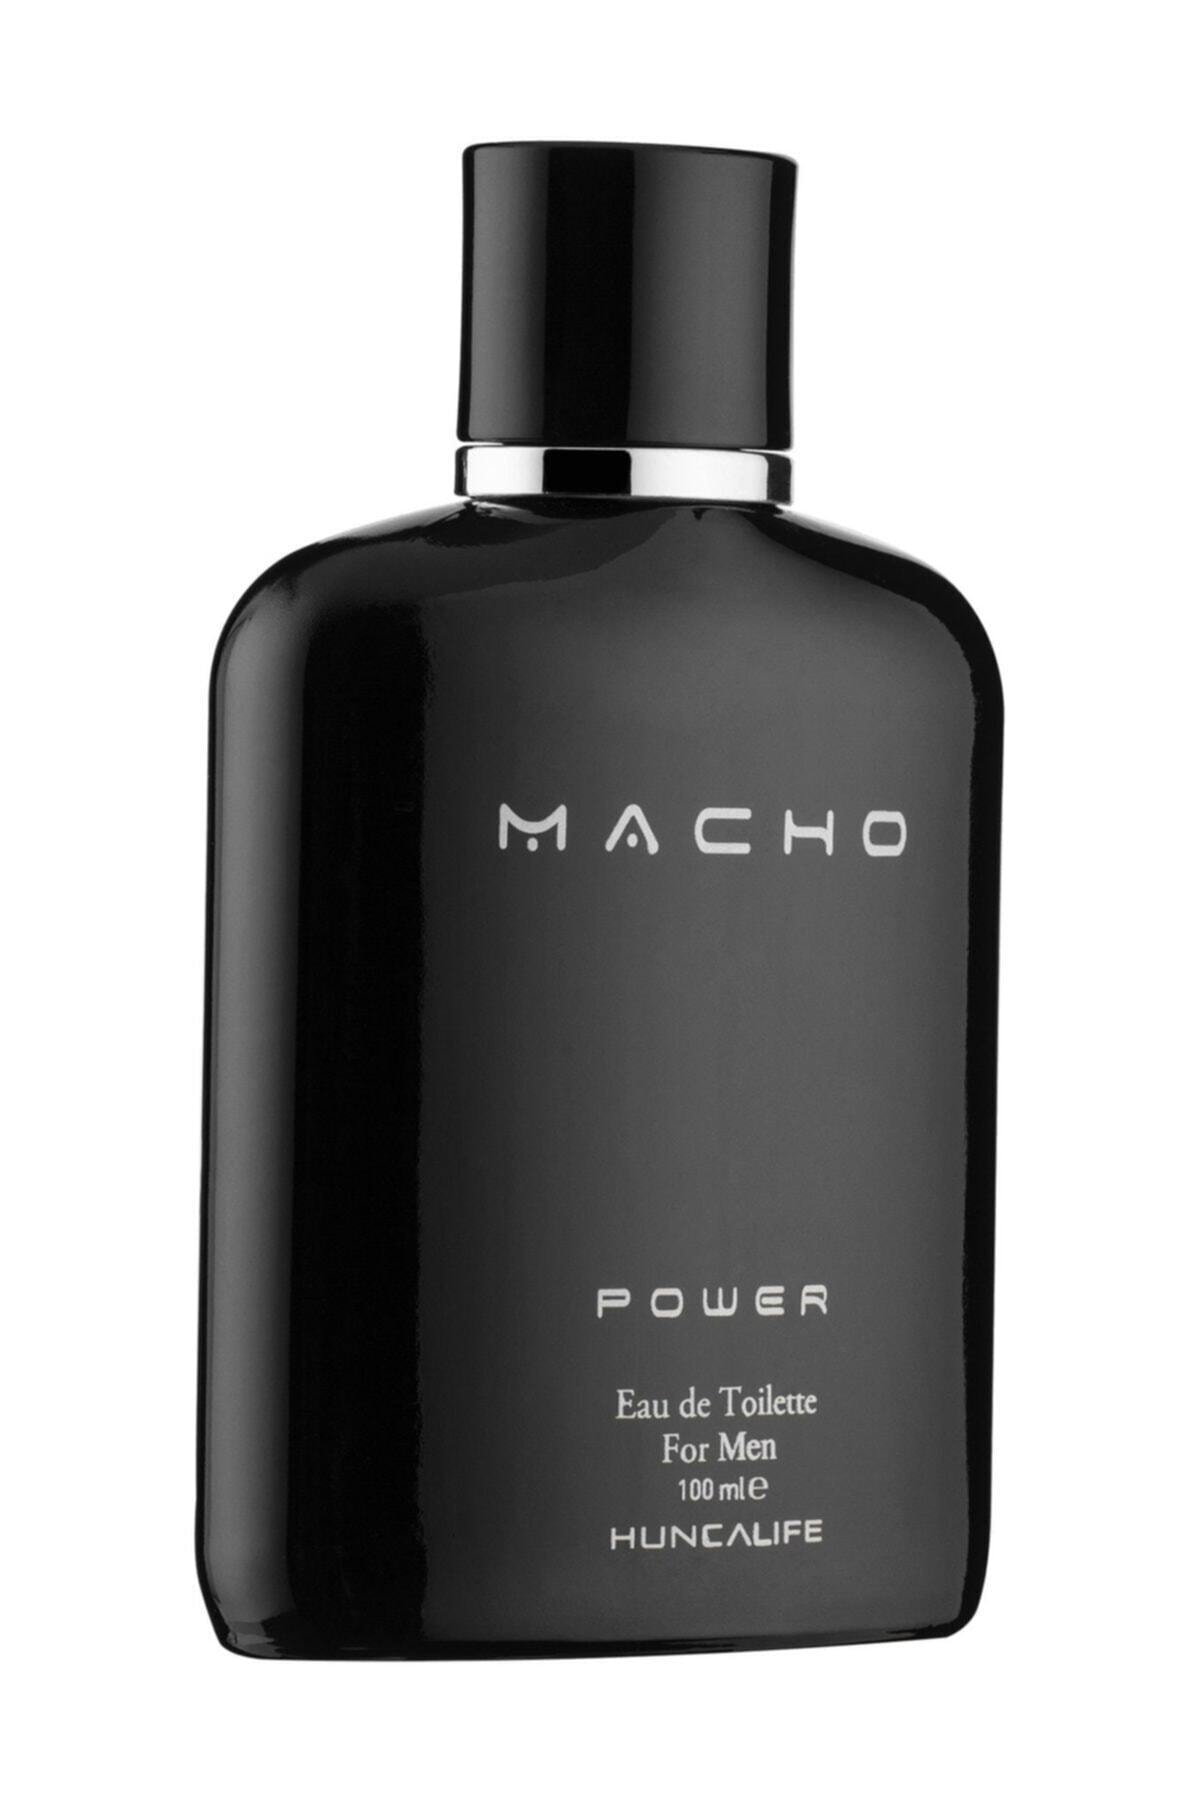 Huncalife Macho Power Edt 100 Ml Erkek Parfümü 8690973701381 1